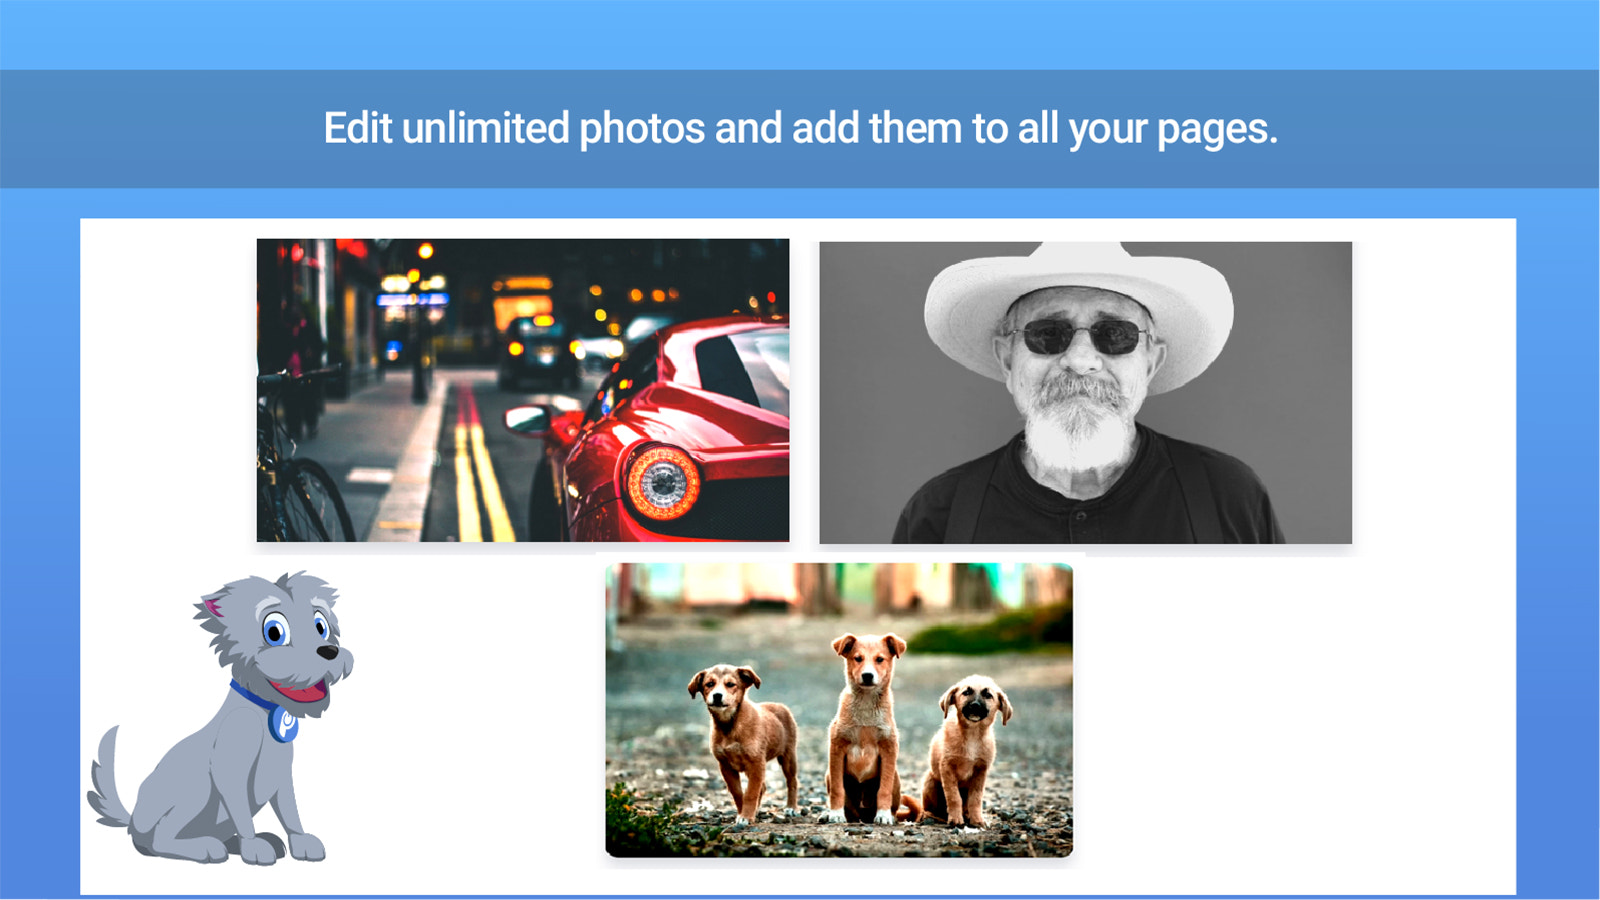 Shopify app to edit photos with filters.